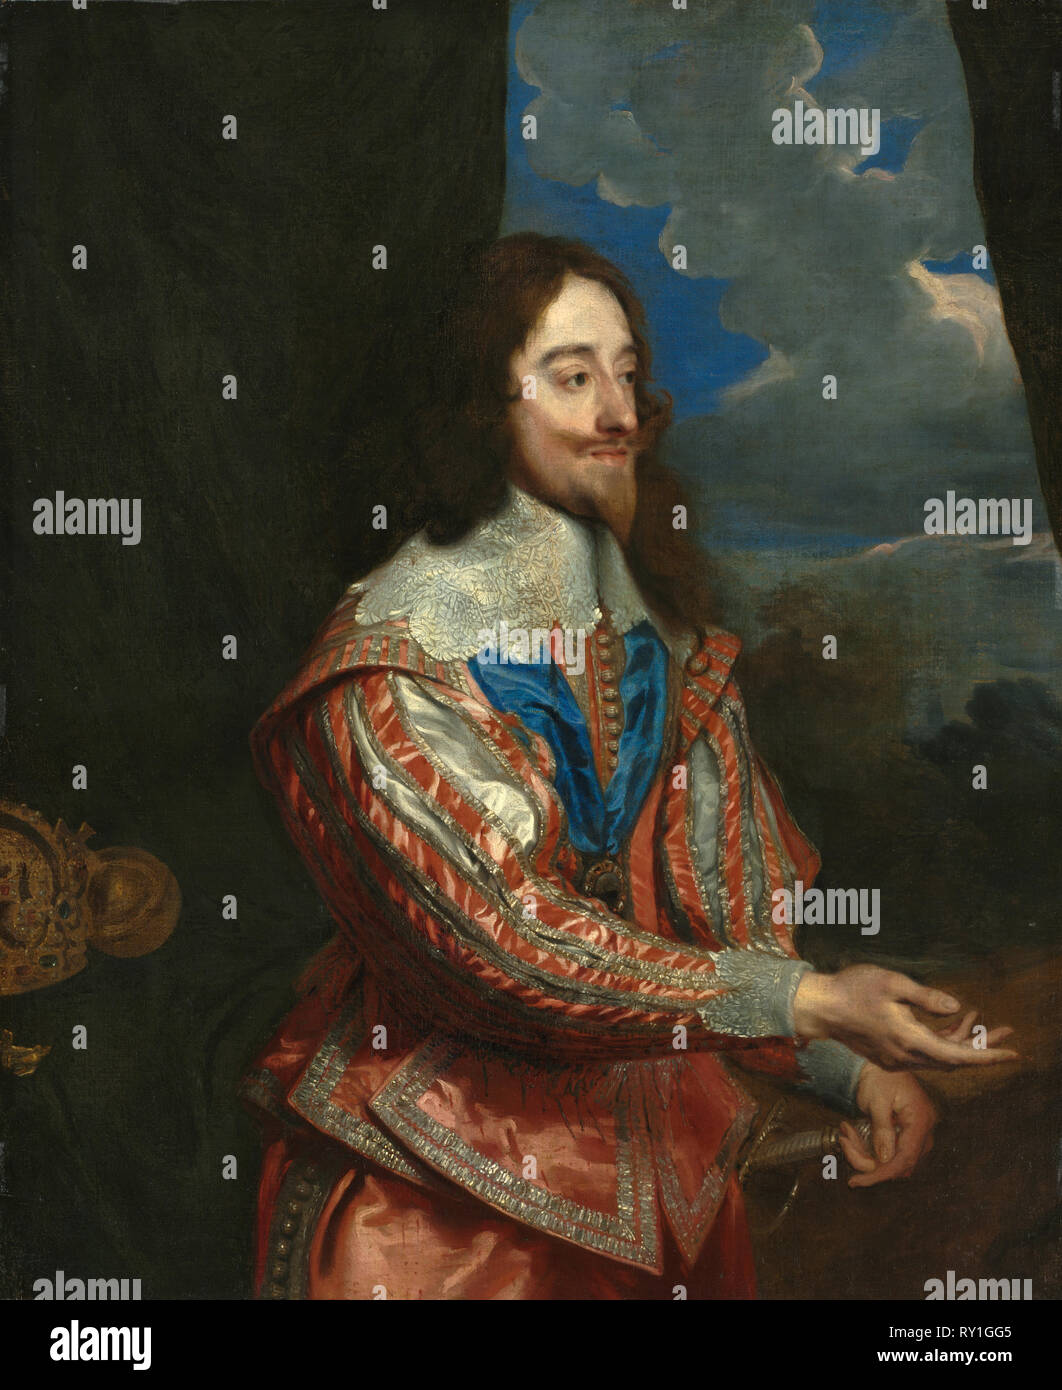 Portrait of Charles I (1600-1649), 17th century or later. Copy after Anthony van Dyck (Flemish, 1599-1641). Oil on canvas; framed: 153.7 x 130.2 x 105.4 cm (60 1/2 x 51 1/4 x 41 1/2 in.); unframed: 116.8 x 96.3 cm (46 x 37 15/16 in - Stock Image